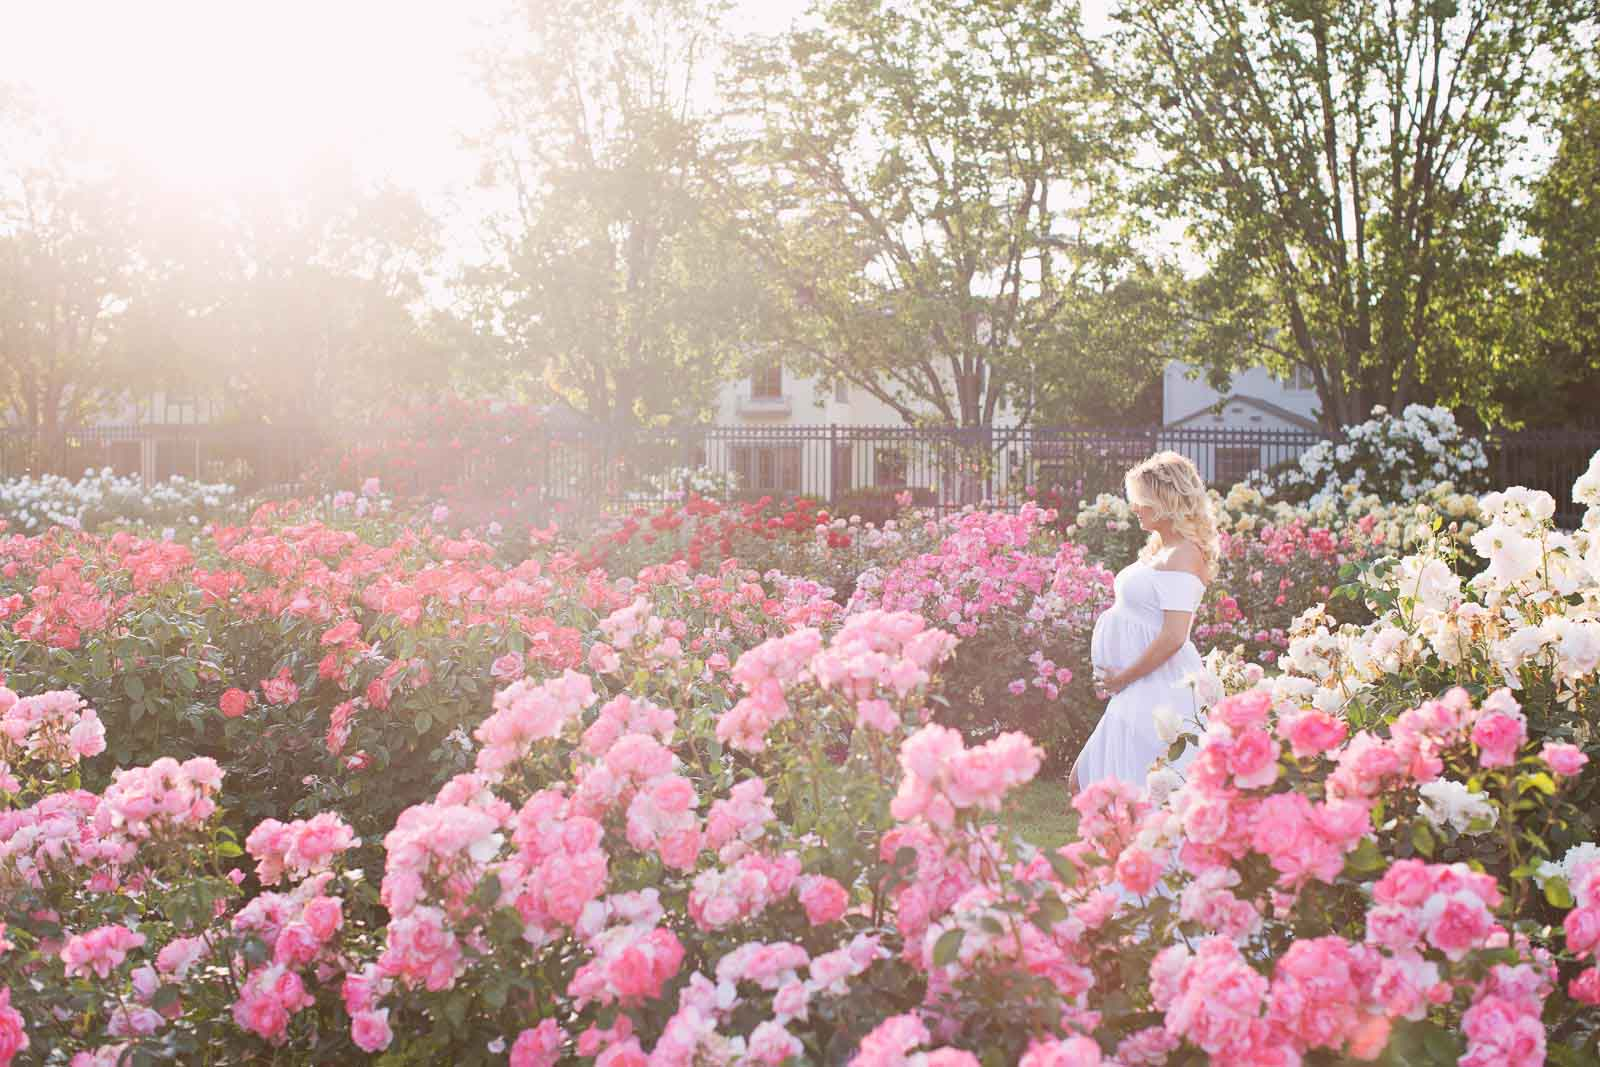 A pregnant woman stands in a field of pink flowers in San Jose, California